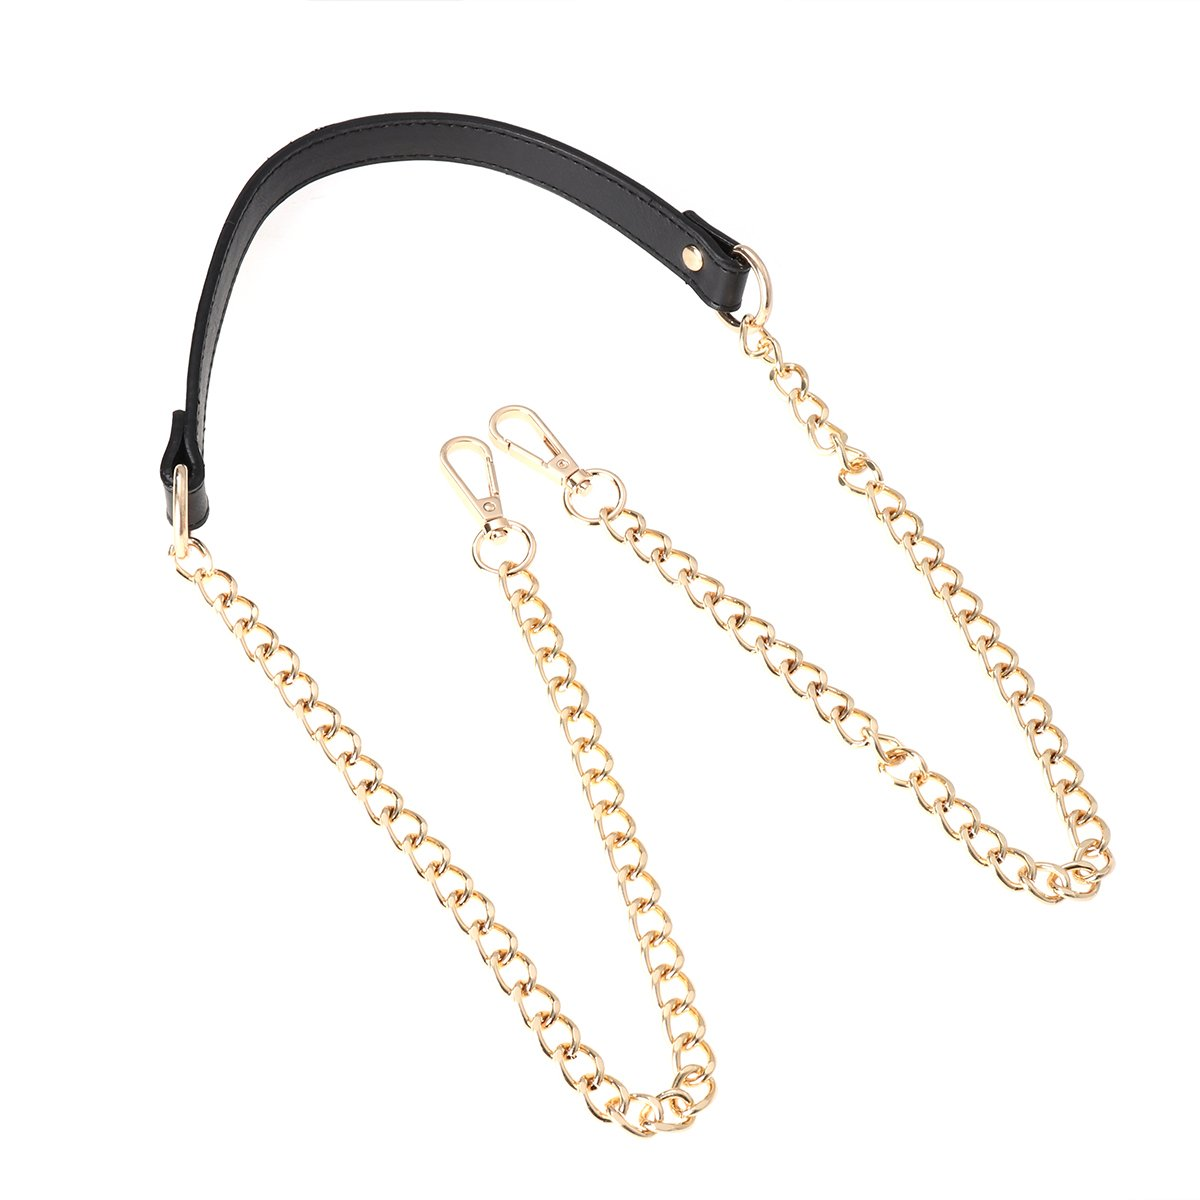 OULII Handbags Metal Chains Purse Chain Shoulder Bags Straps Replacement Accessories with Buckles Gold Black